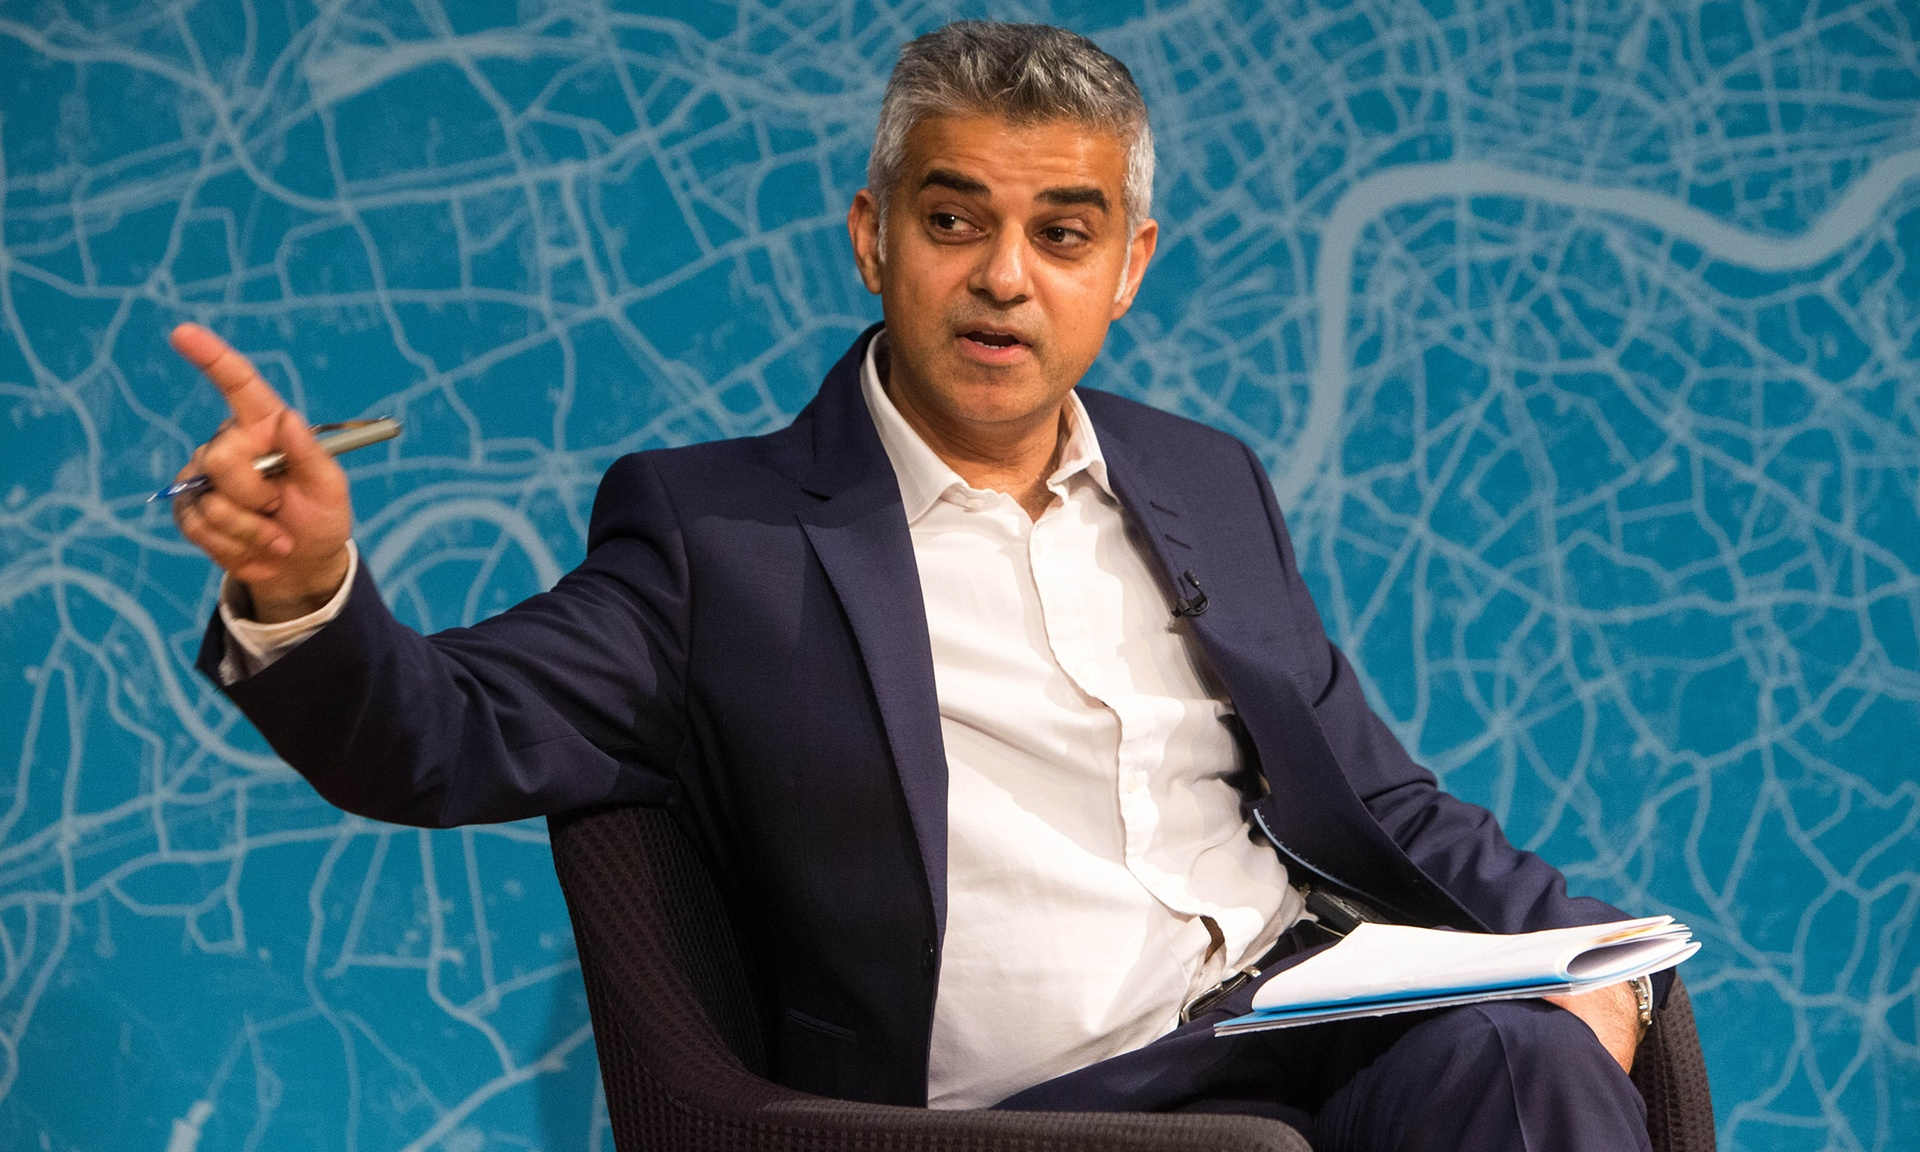 Sadiq Khan promises London will be run on clean energy by 2050